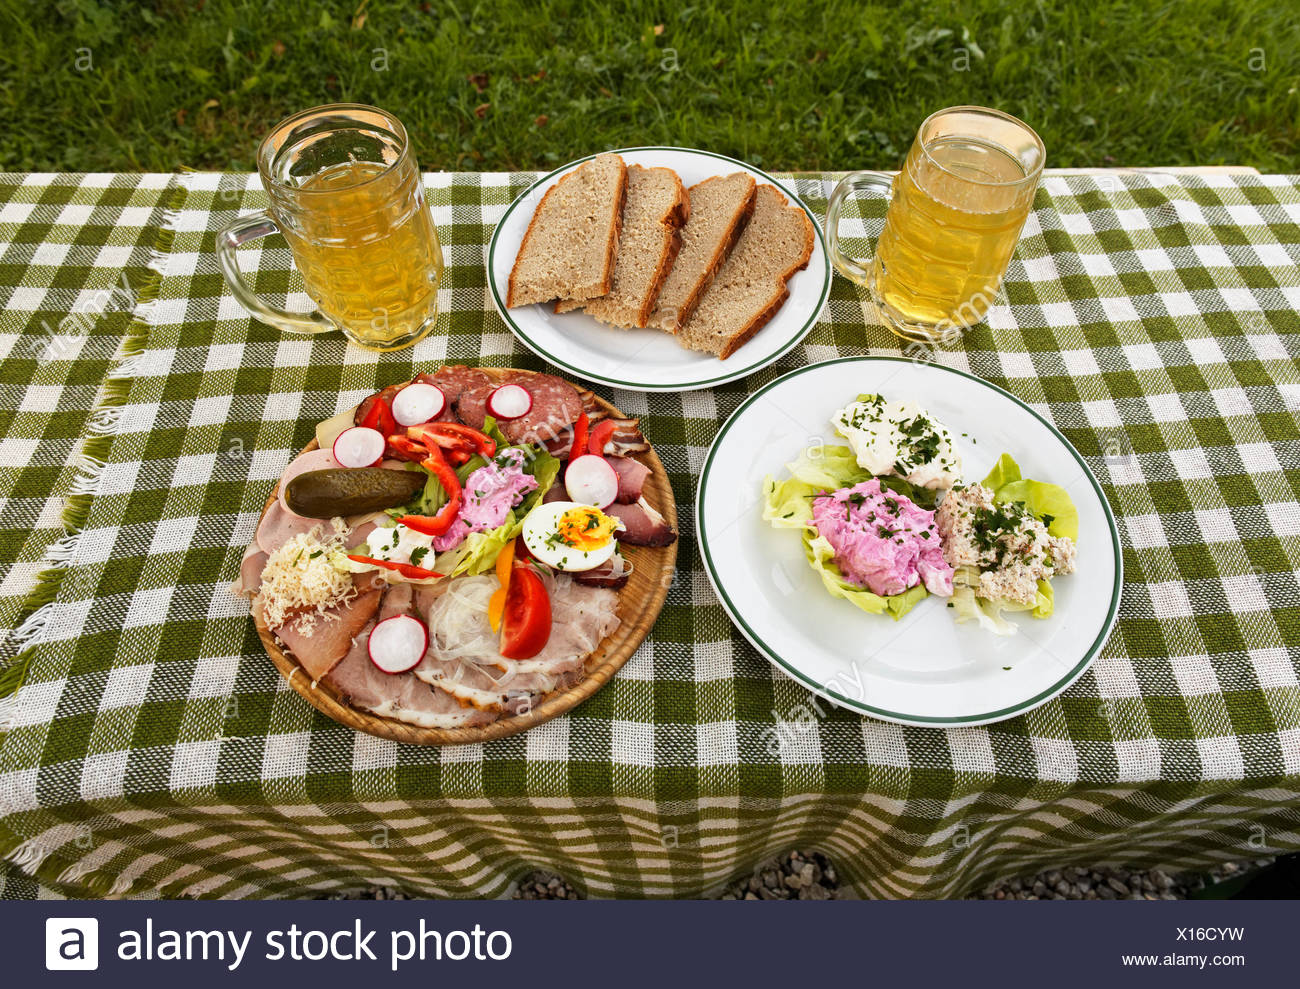 A sausage and cheese platter and some spread on a plate with two glasses of cider & Sausage Cheese Plate Stock Photos \u0026 Sausage Cheese Plate Stock ...